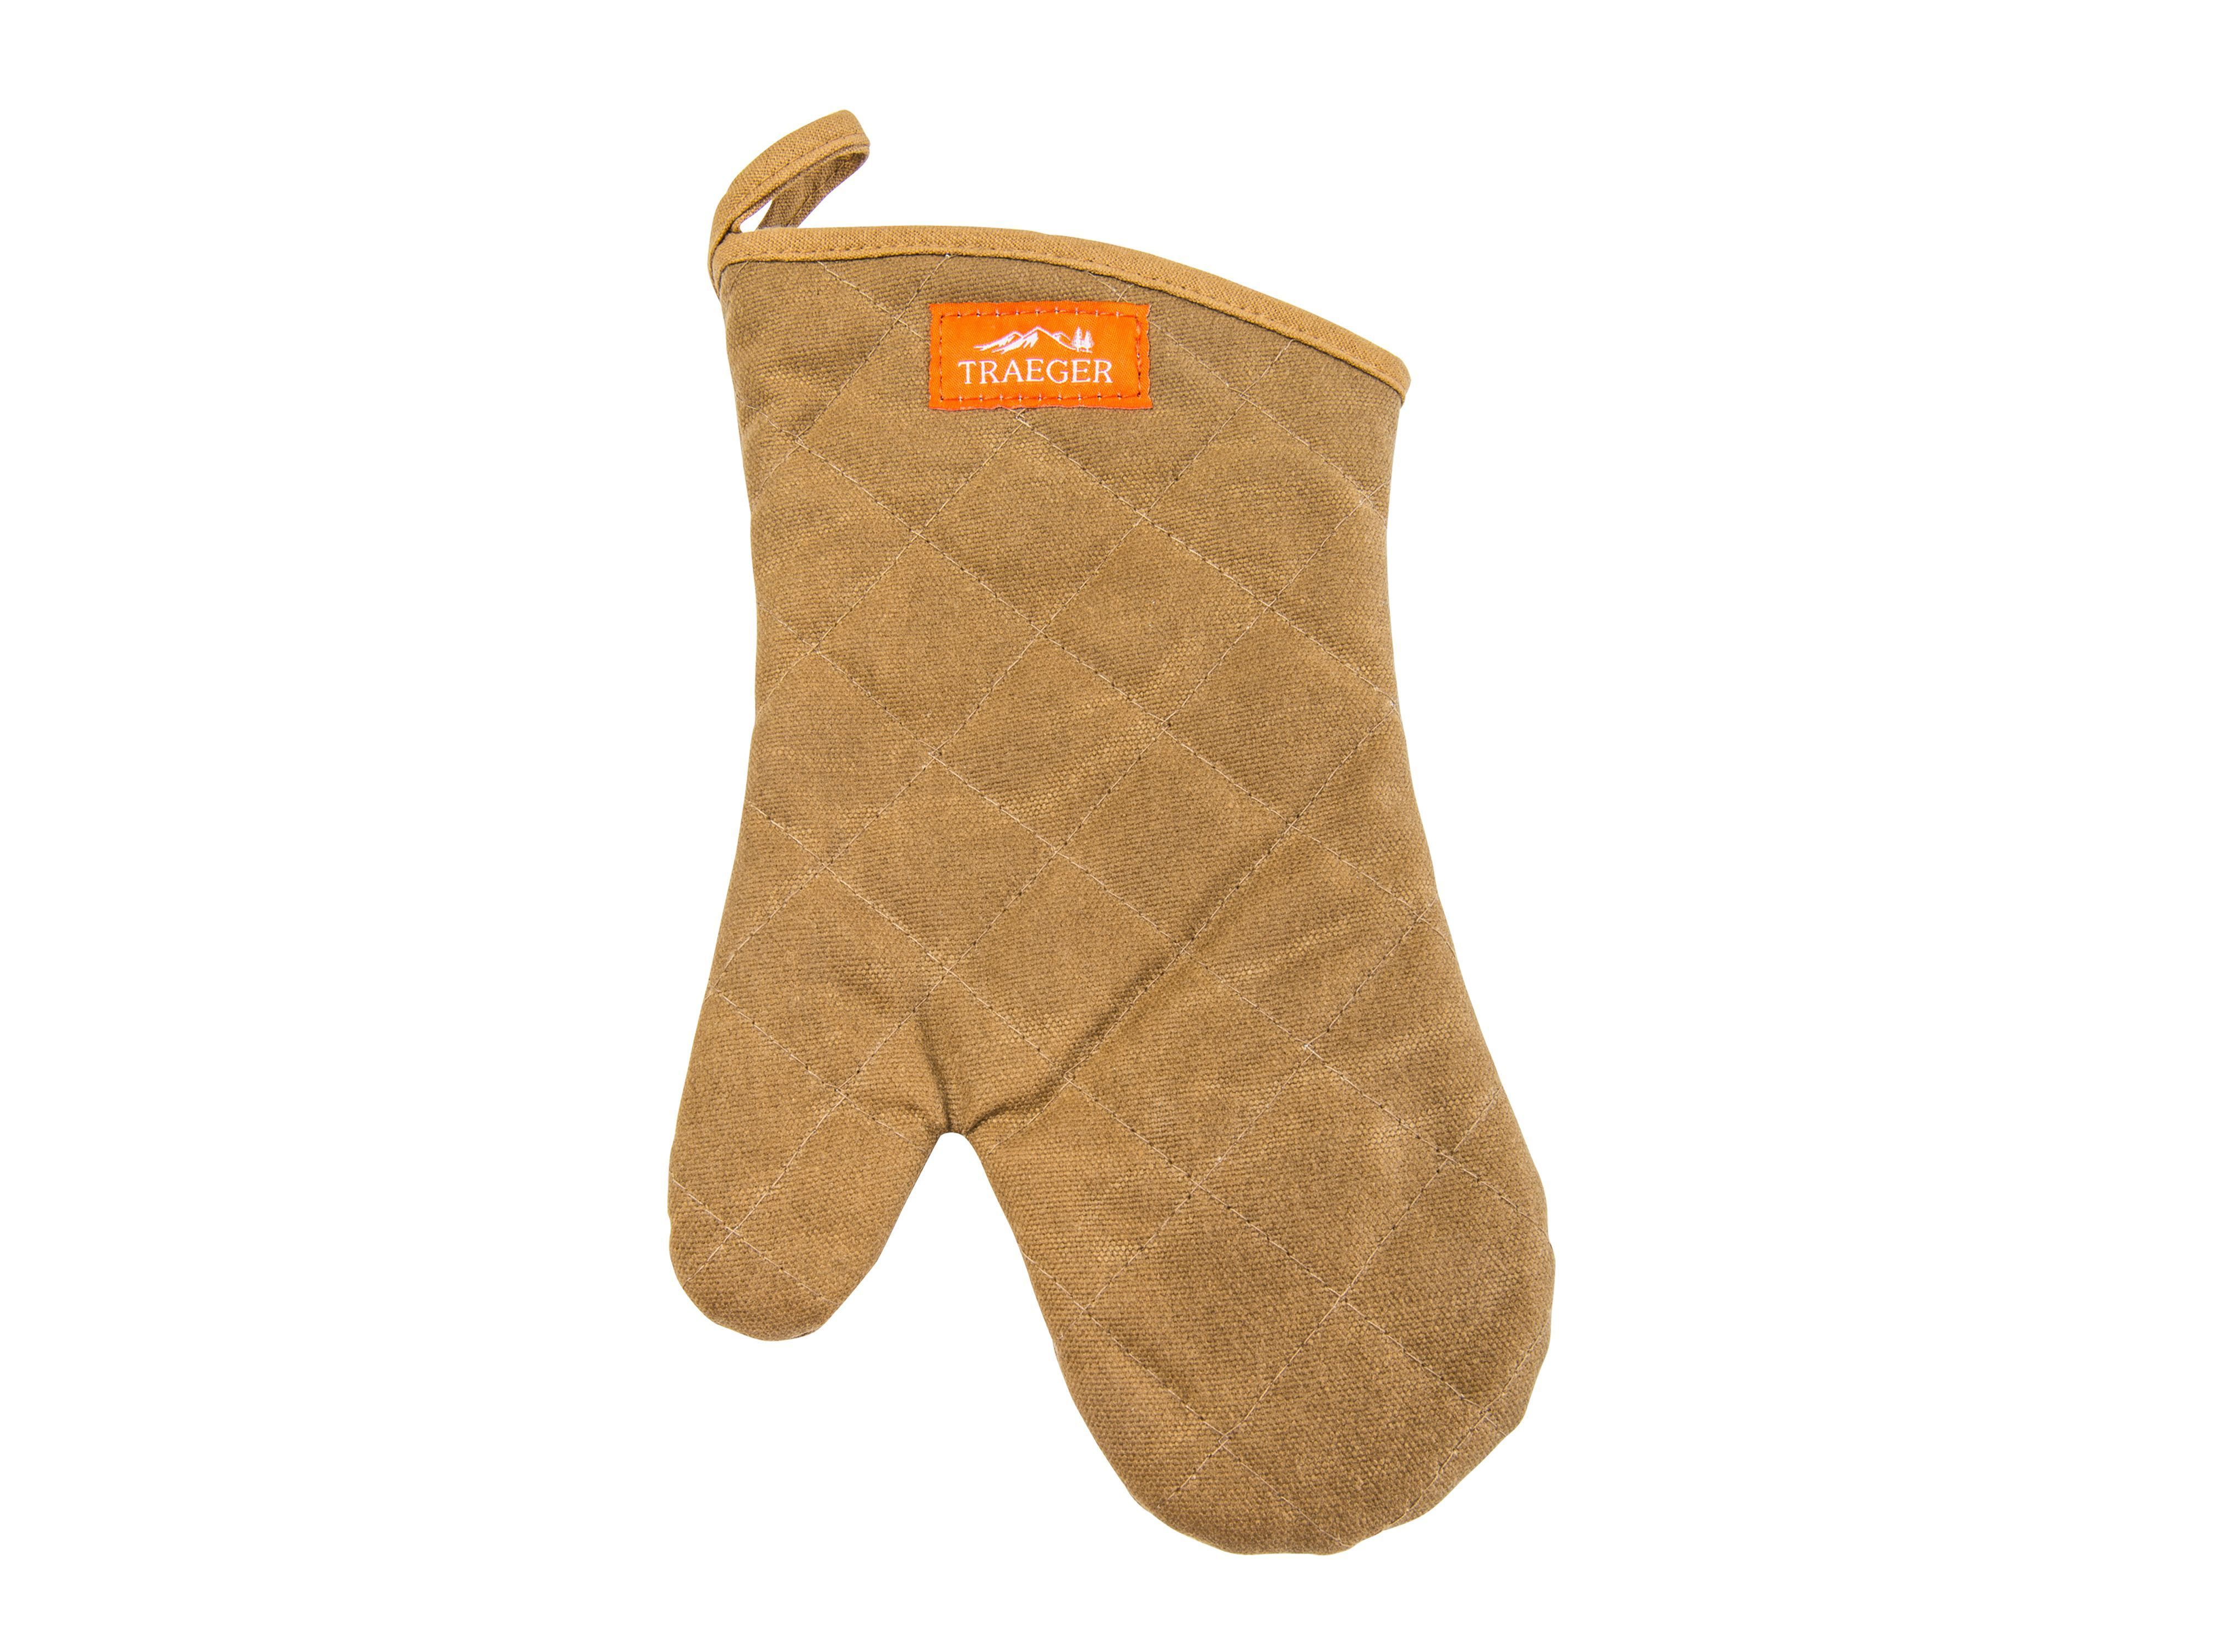 Traeger | BBQ Mitt | Brown Canvas And Leather